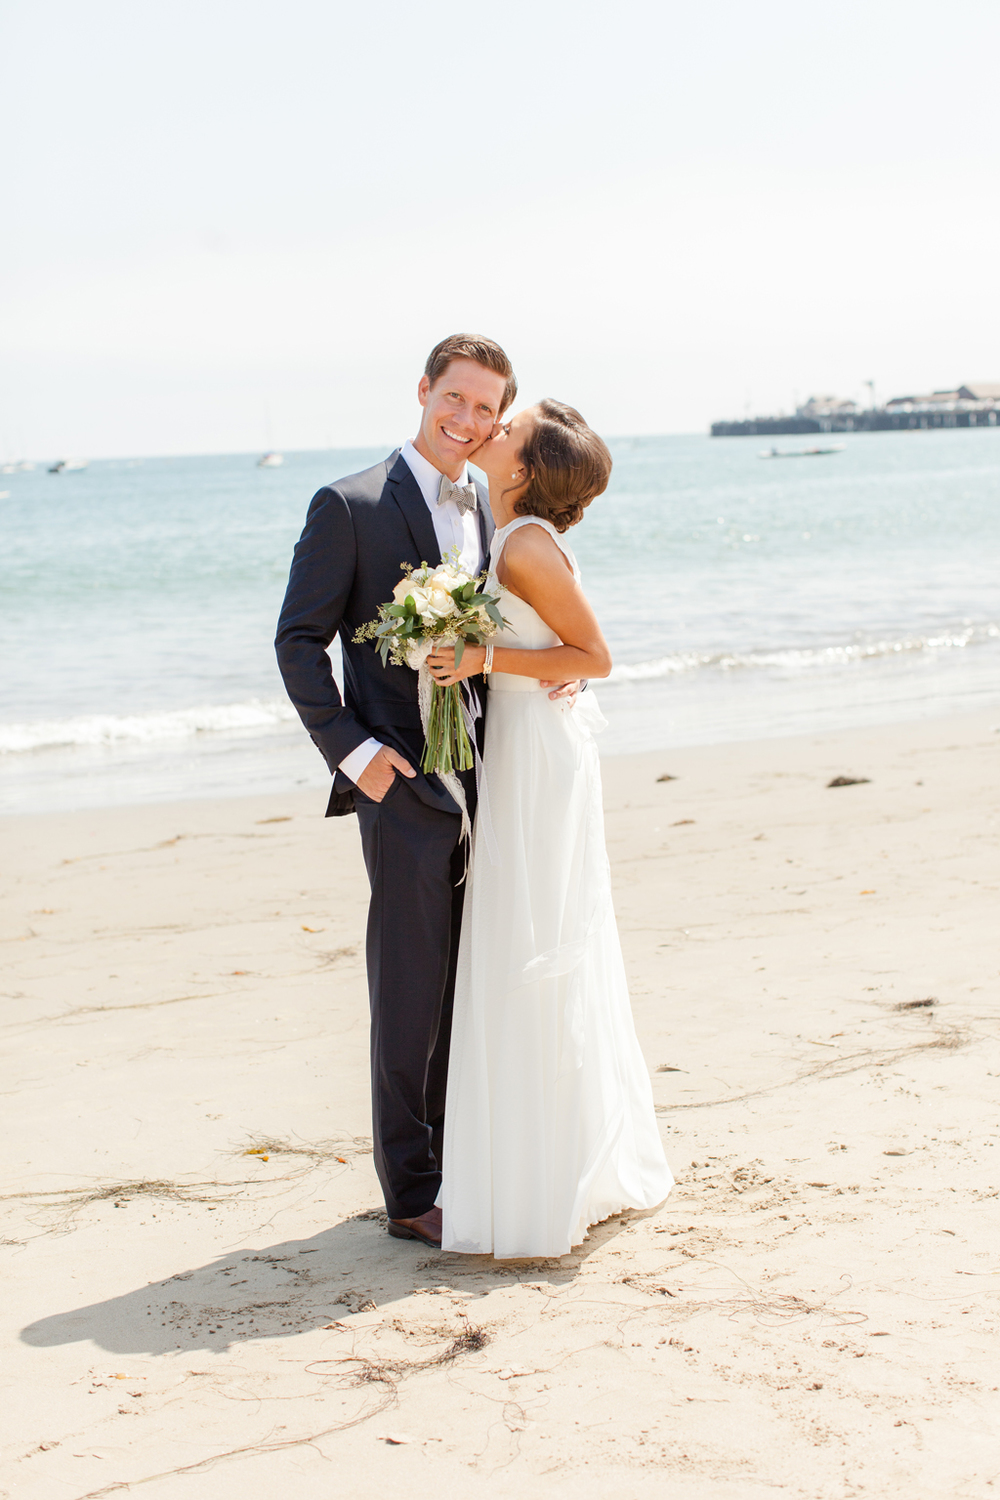 kylee-david-california-beach-wedding-10.jpg